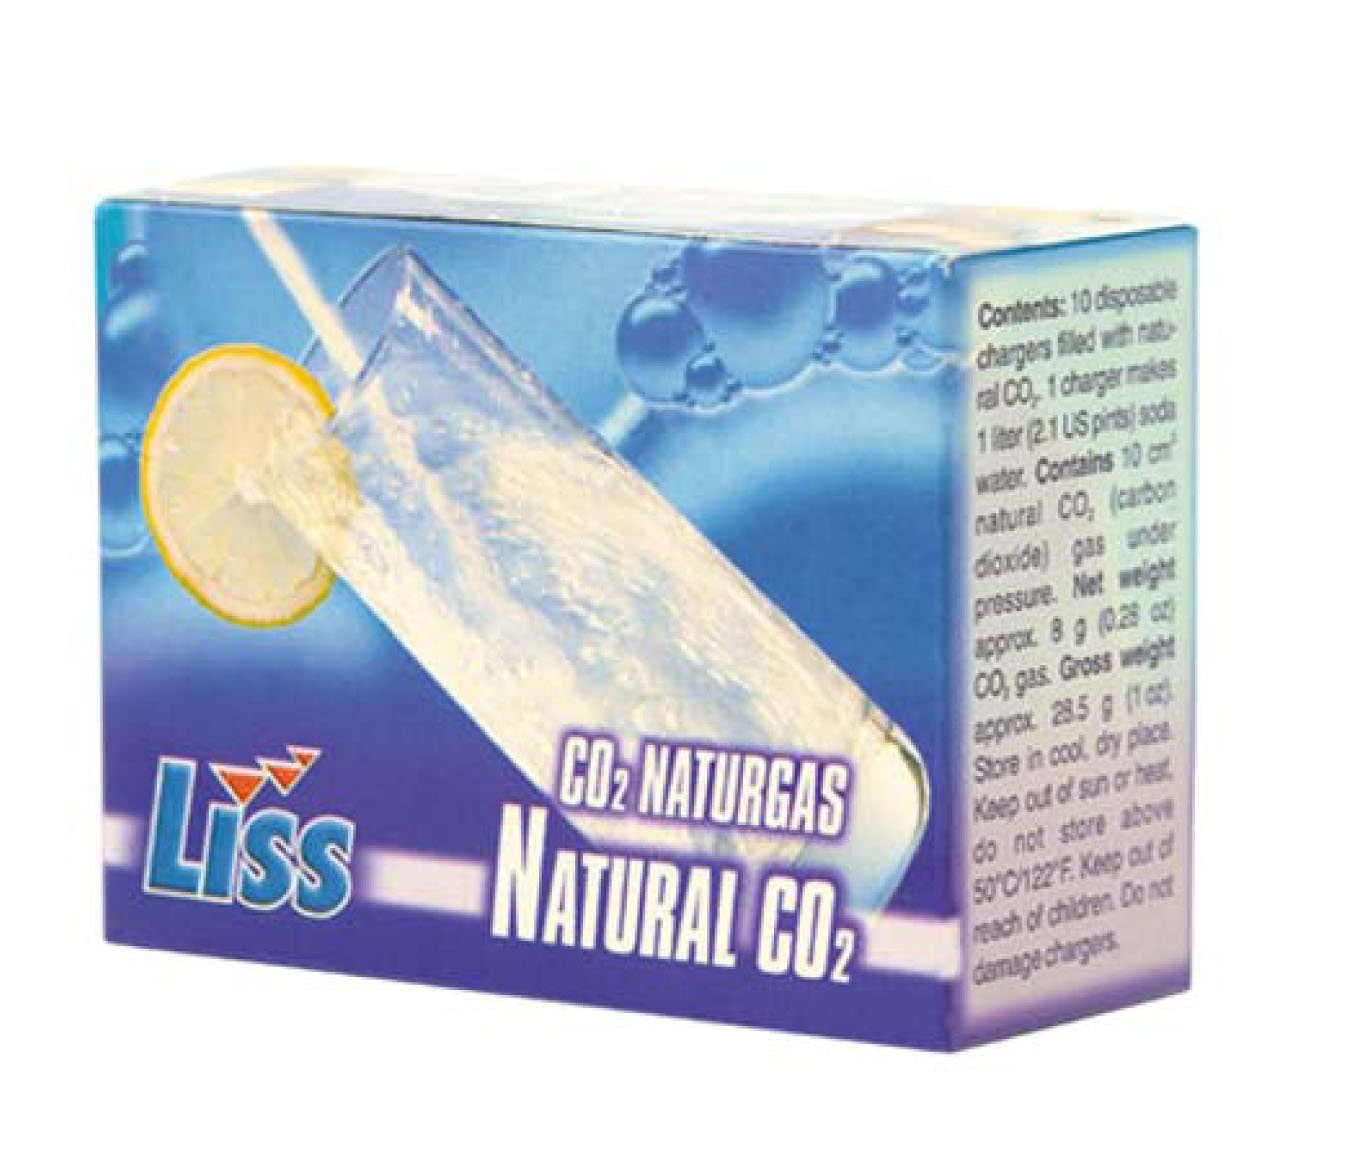 Liss CO2 Soda Siphon Charger Set 8 Gram 10 Pack by Liss